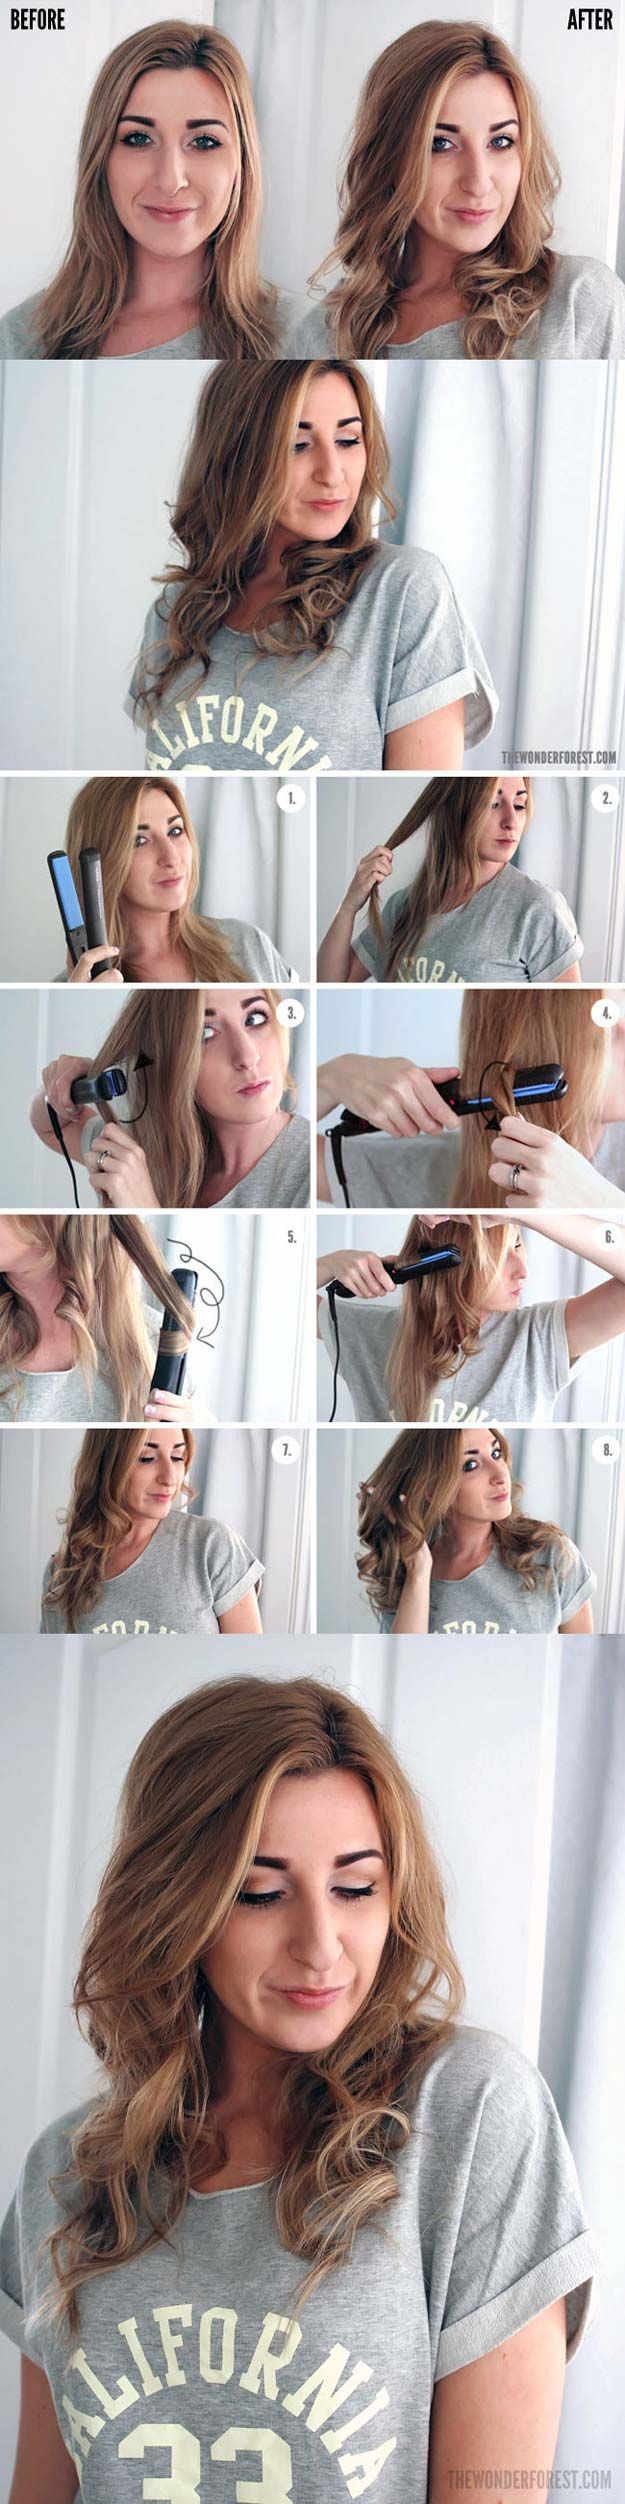 Hair Straightening Tutorials - How to Curl Your Hair with a Flat Iron -Looking F...